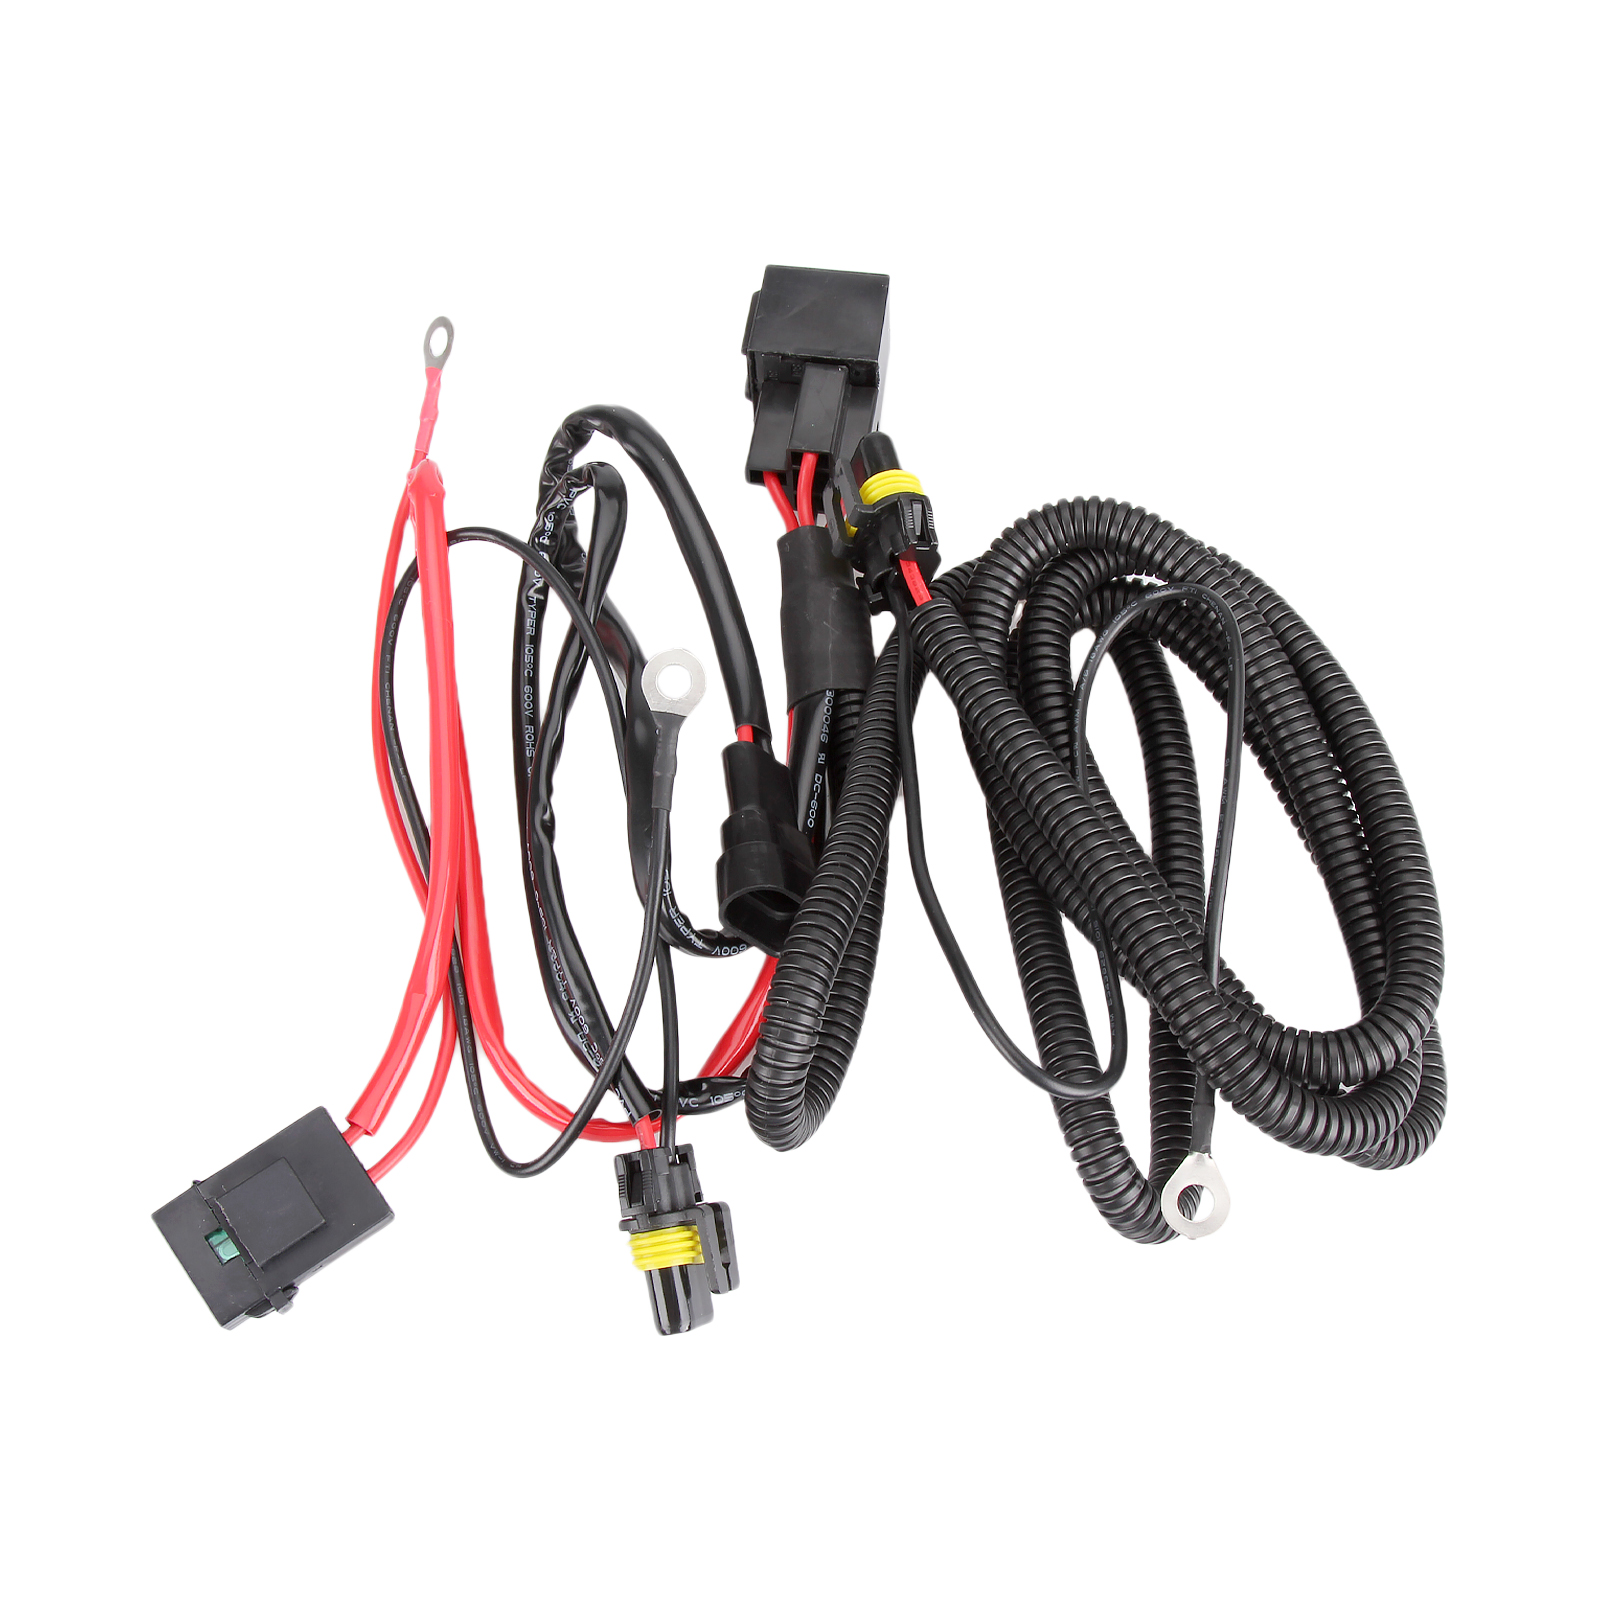 hight resolution of xenon hid bulb conversion relay wiring harness h1 h7 h8 h9 h11 9145 kit 12v 40a